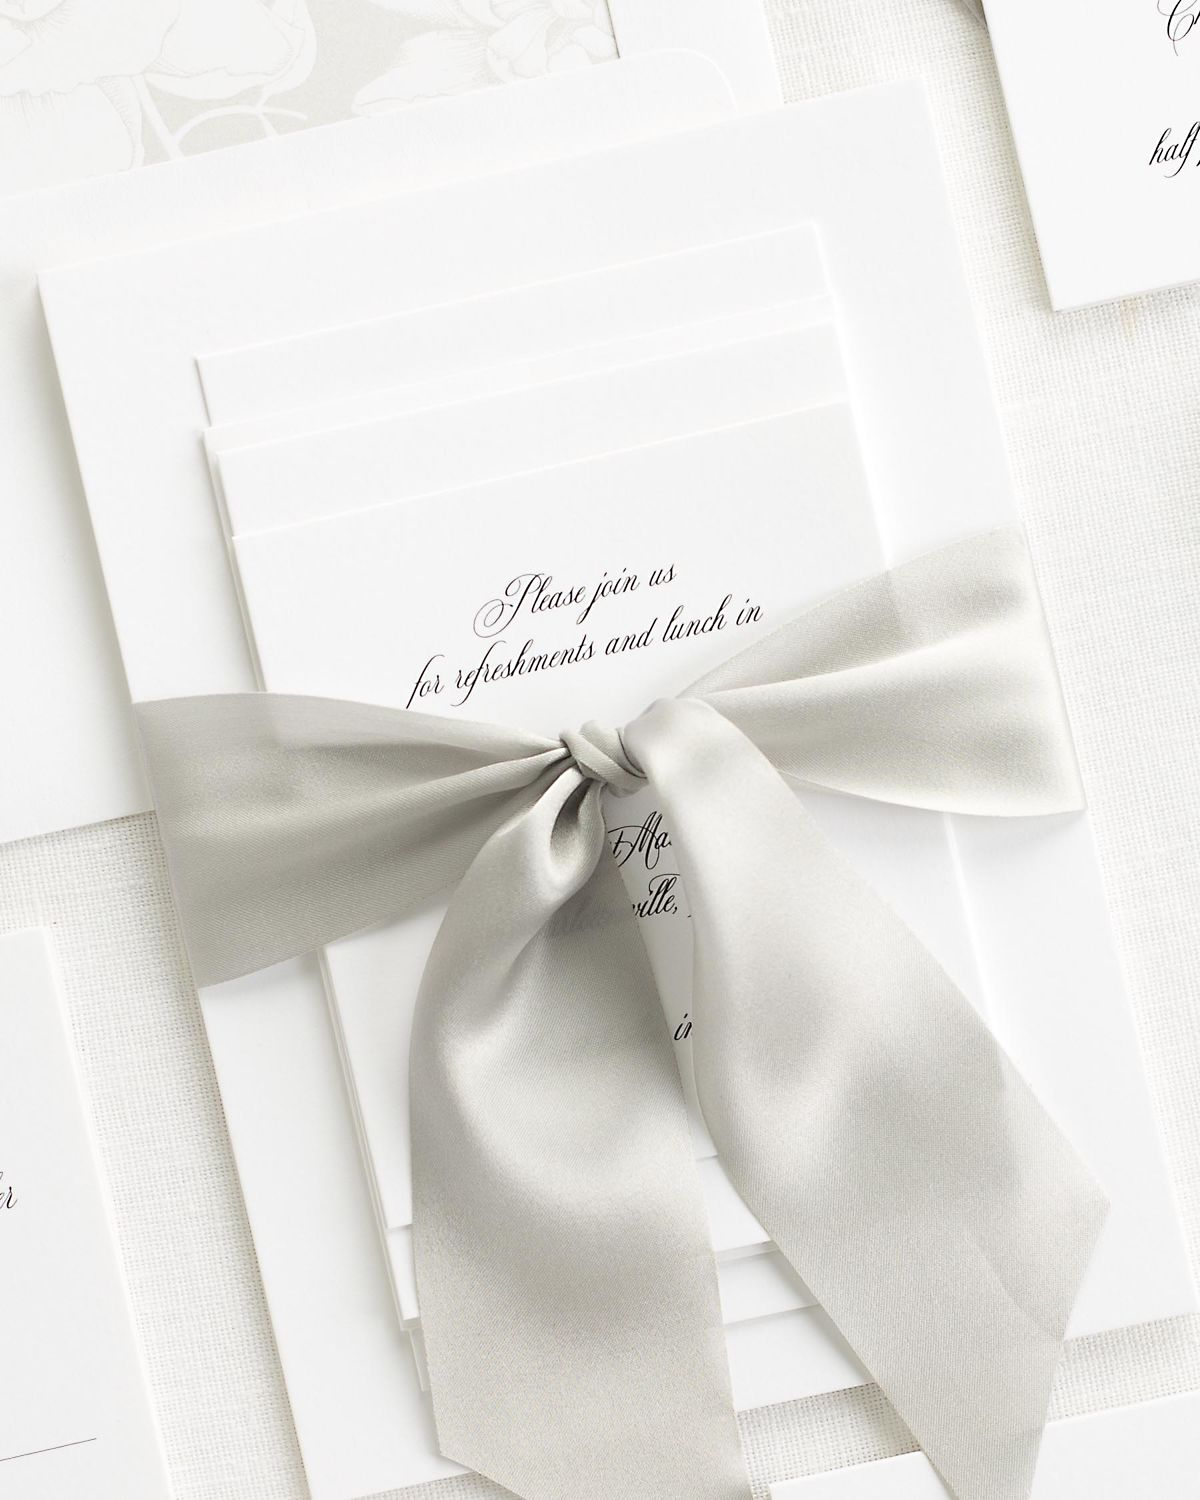 Complete Wedding Stationery Set with Light Gray Ribbon and Enclosures